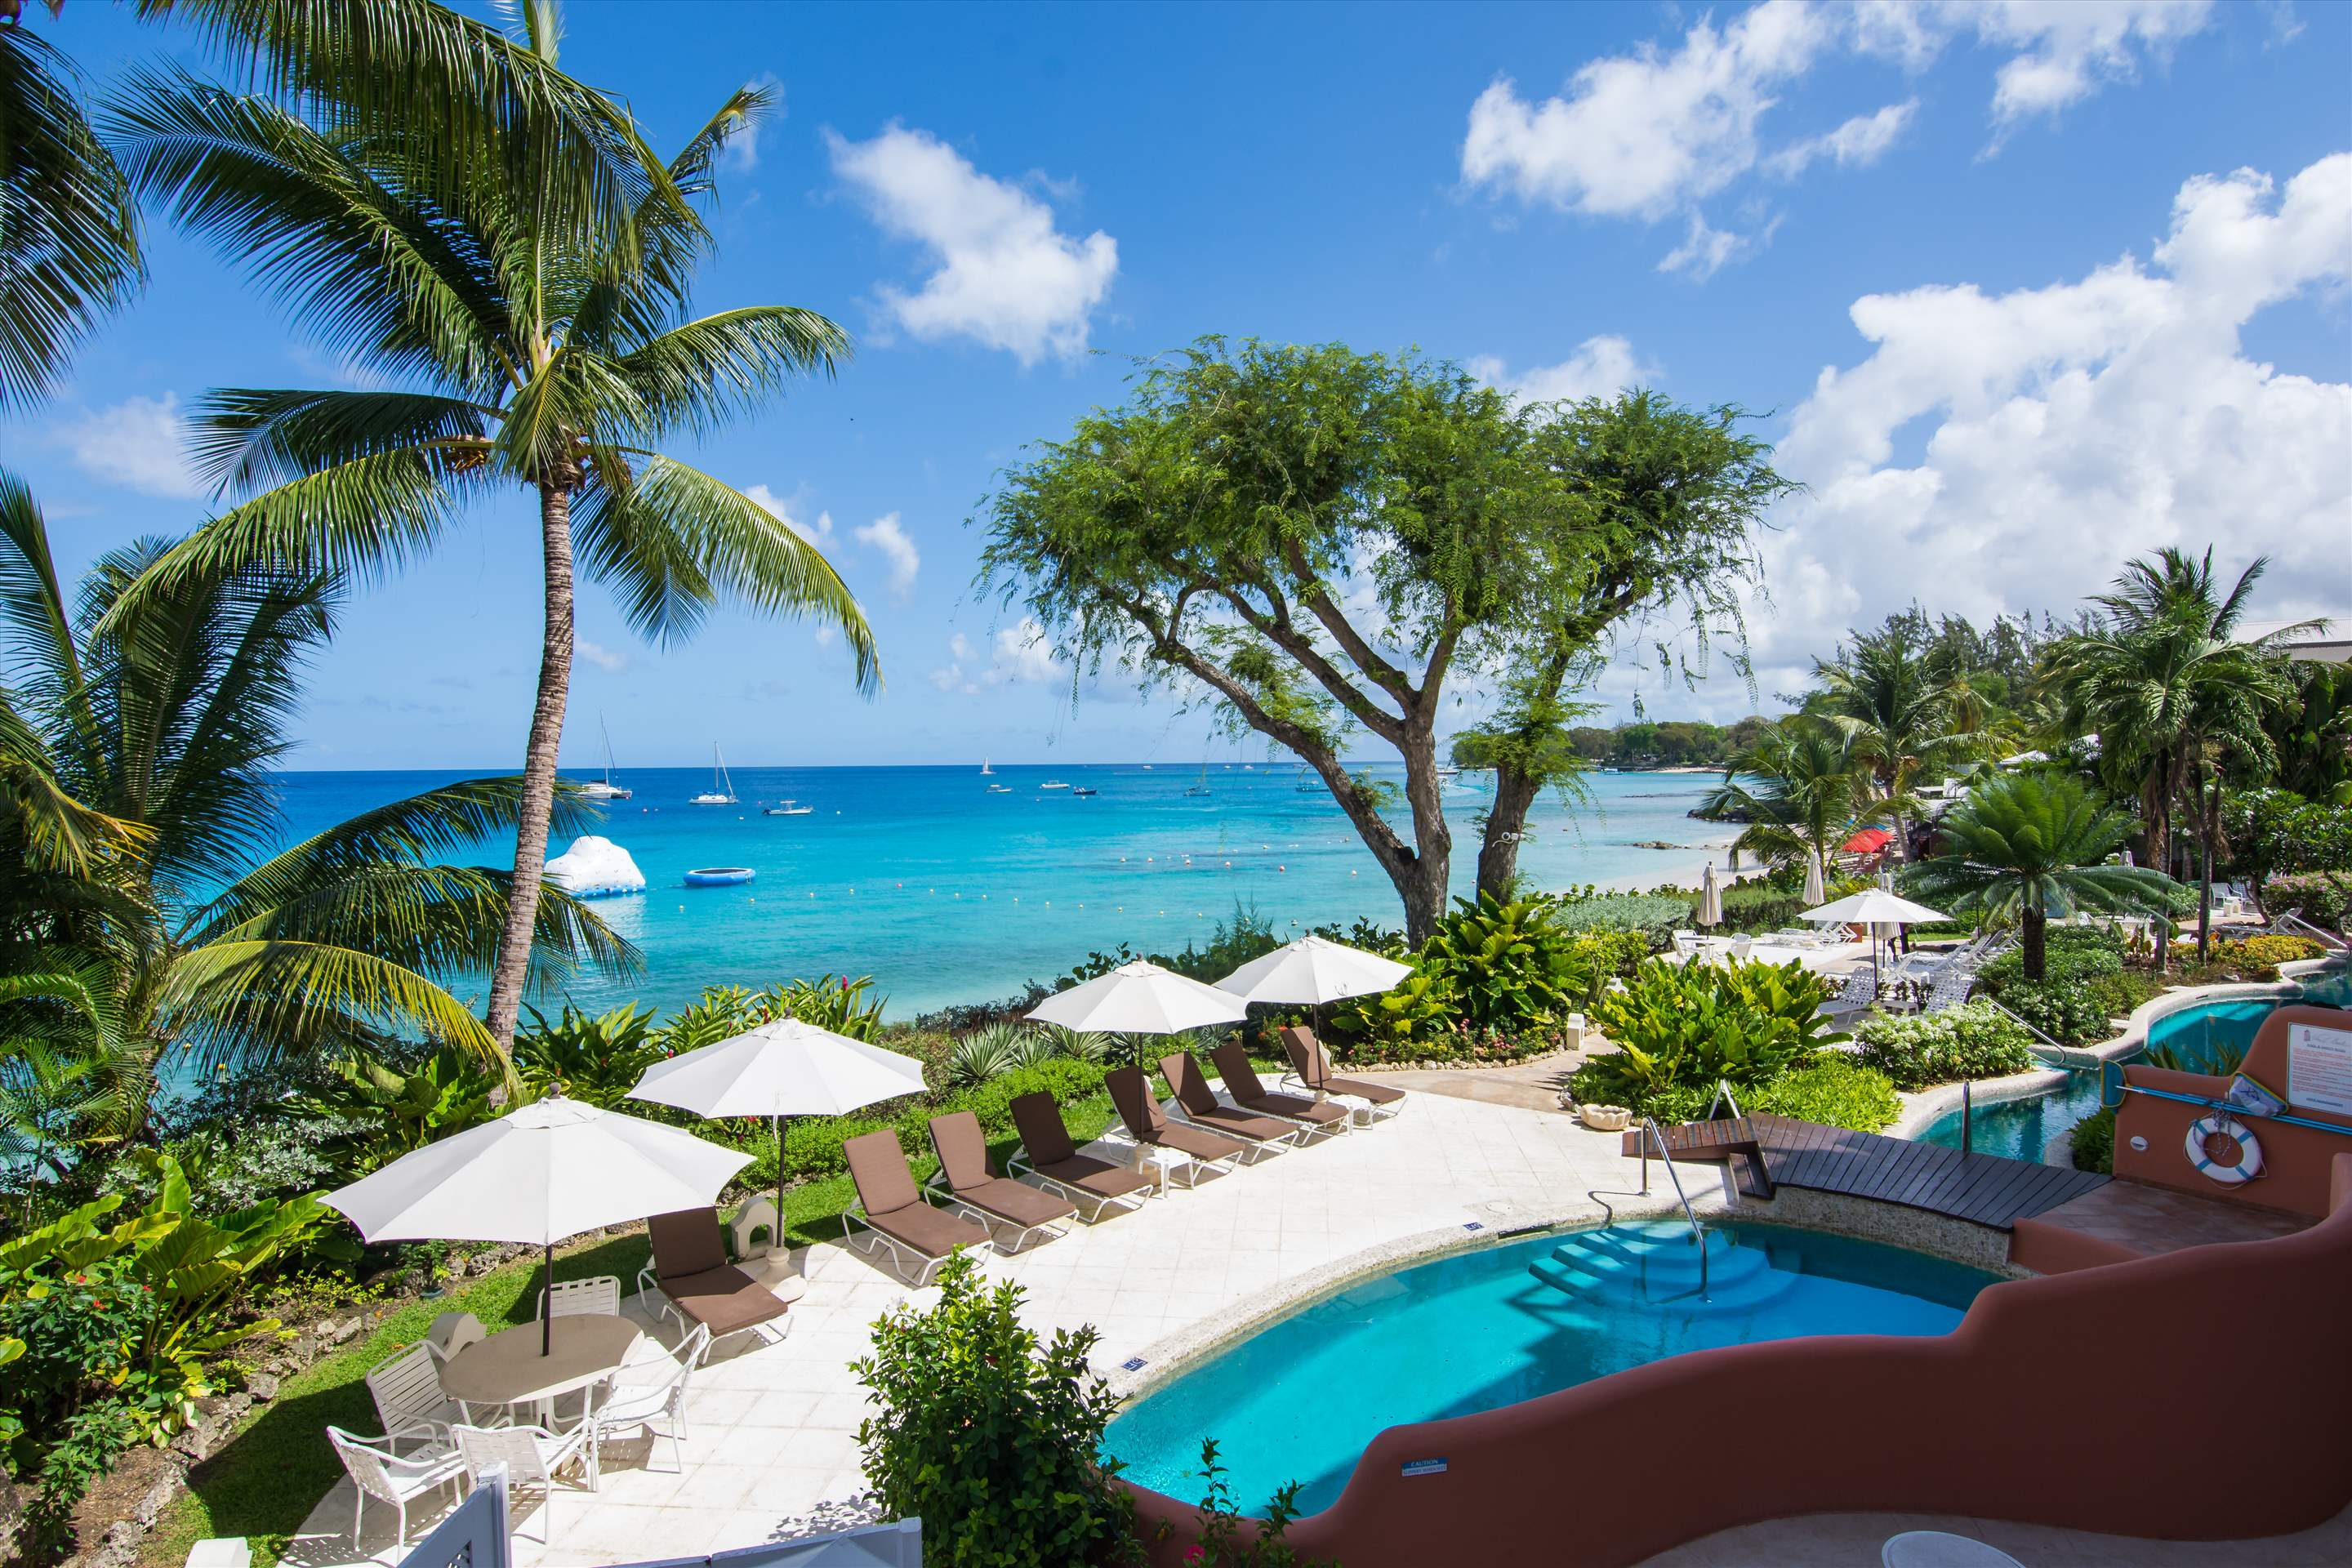 Villas on the Beach 201 , 3 bedroom, 3 bedroom apartment in St. James & West Coast, Barbados Photo #14